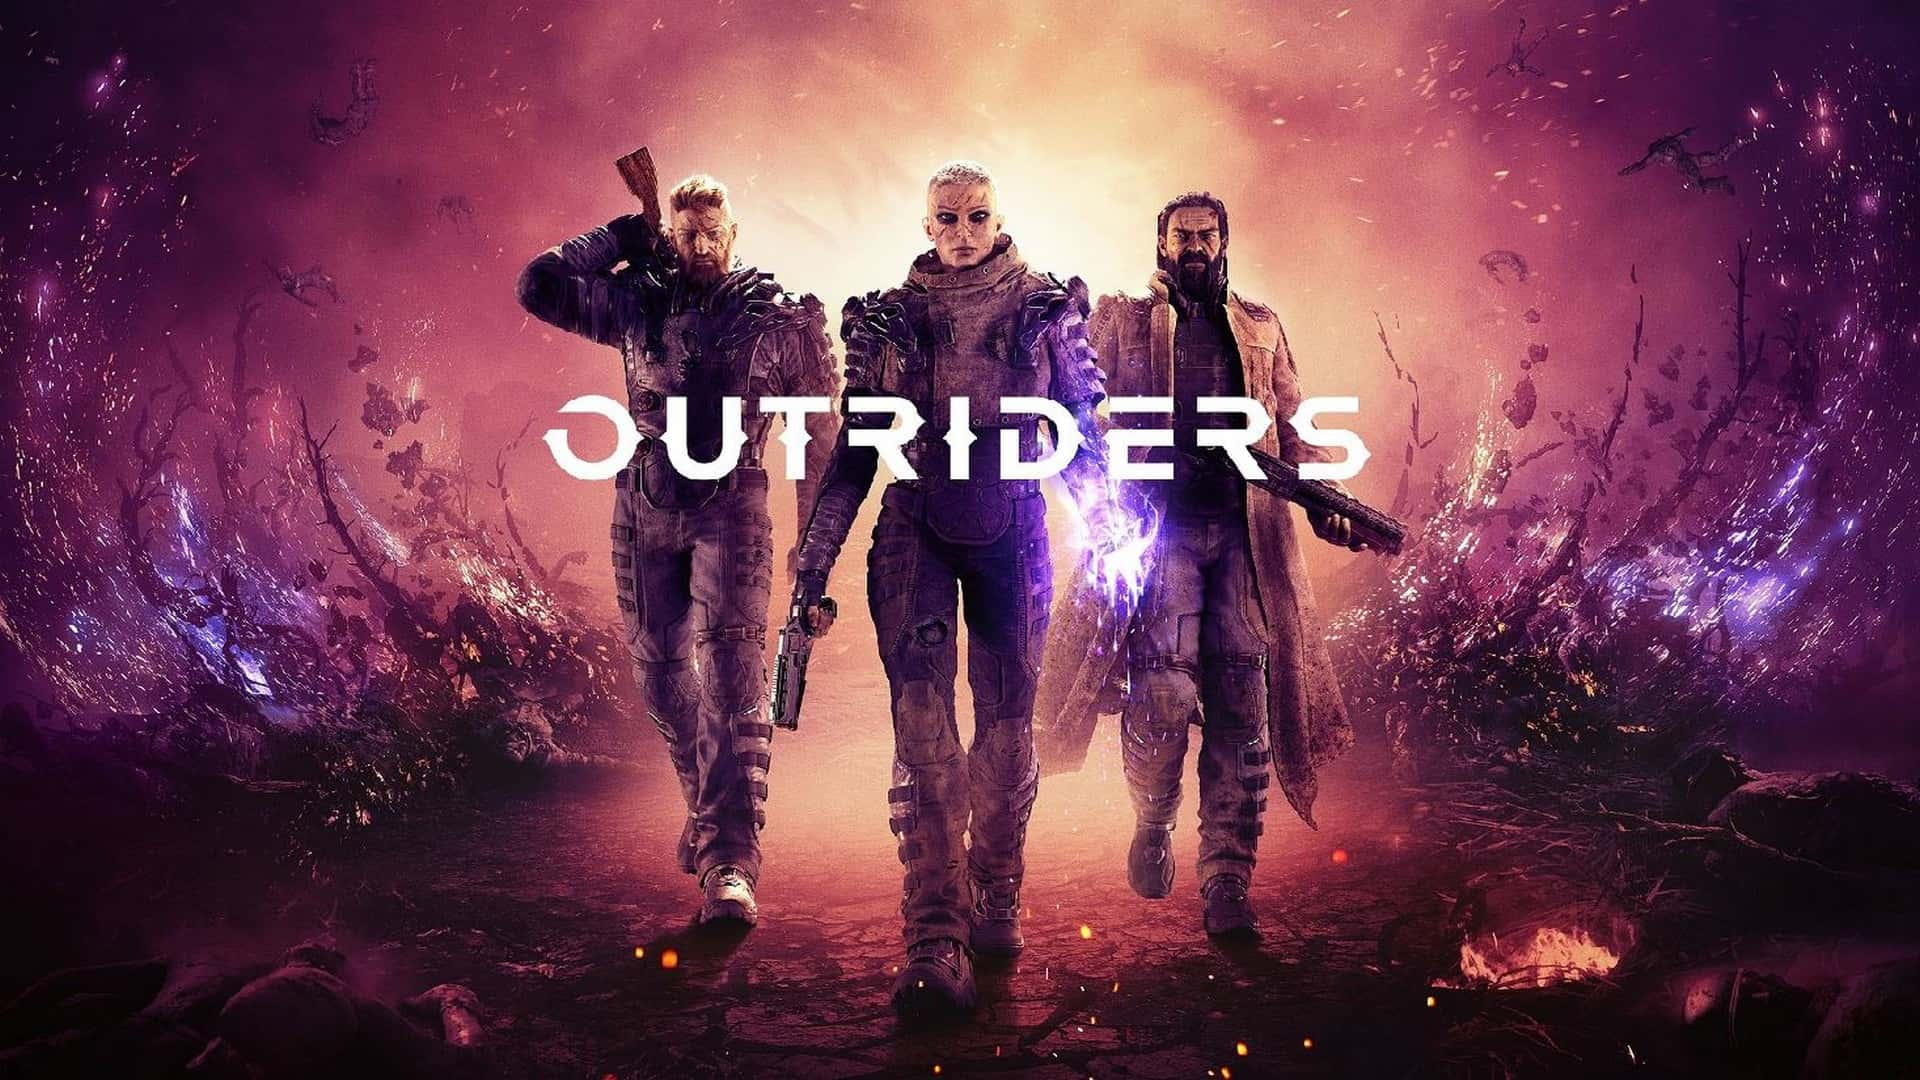 Outriders Square Enix People Can Fly